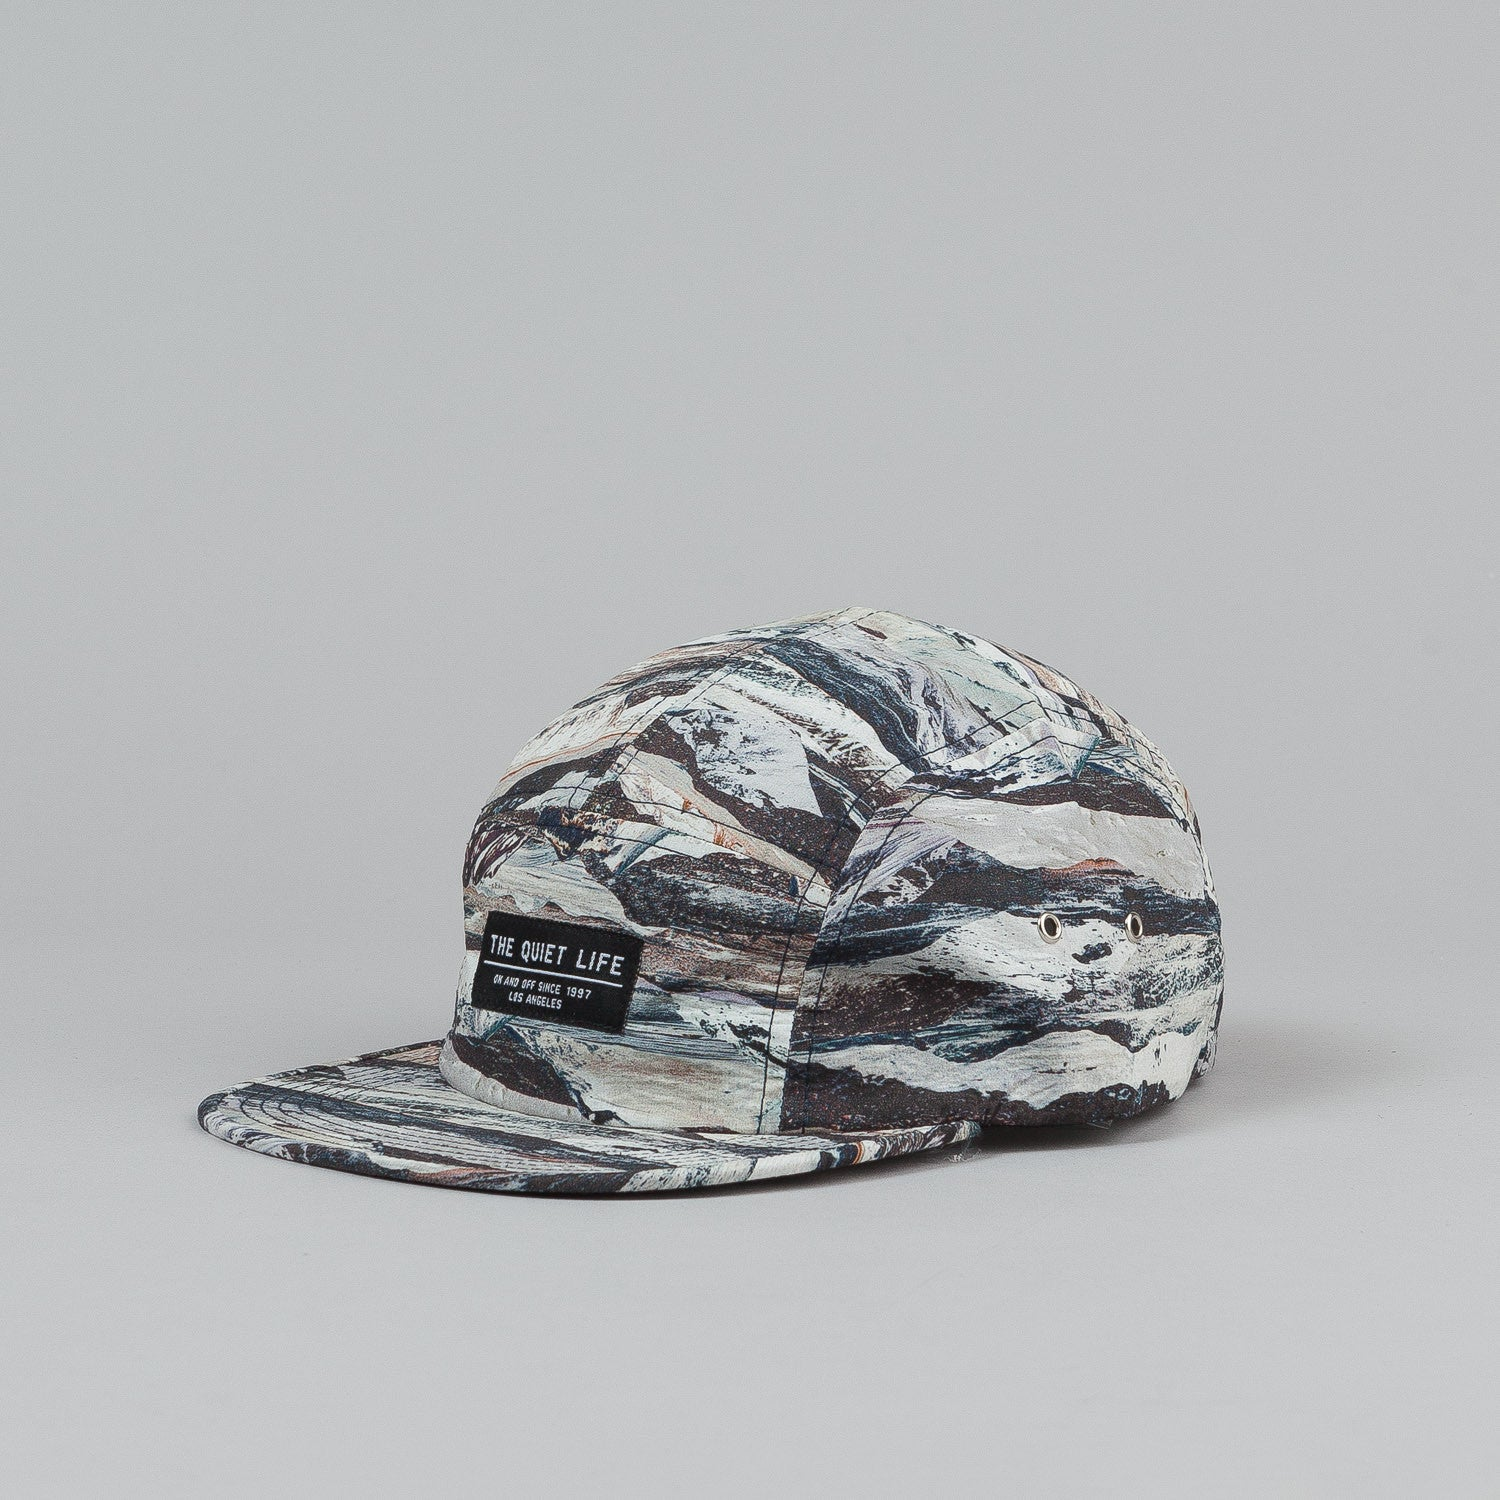 The Quiet Life Mountain 5 Panel Cap